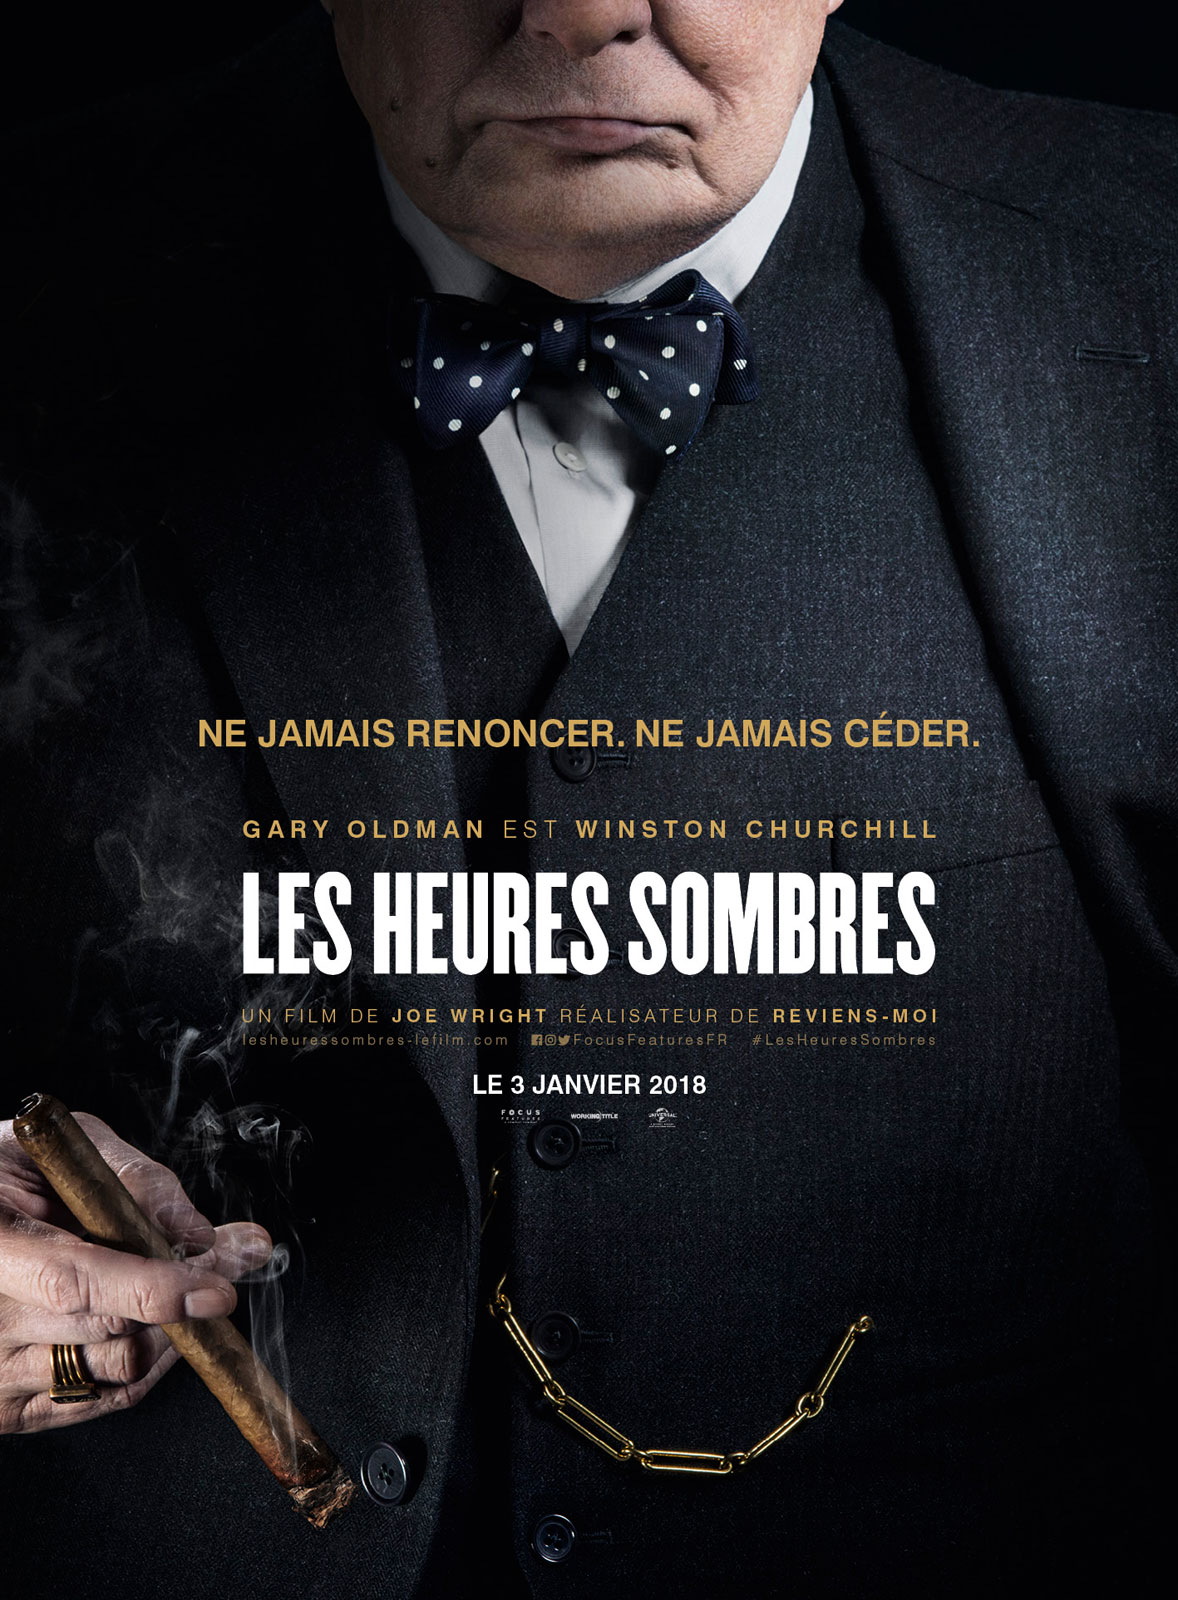 Les heures sombres FRENCH DVDRIP x264 2018